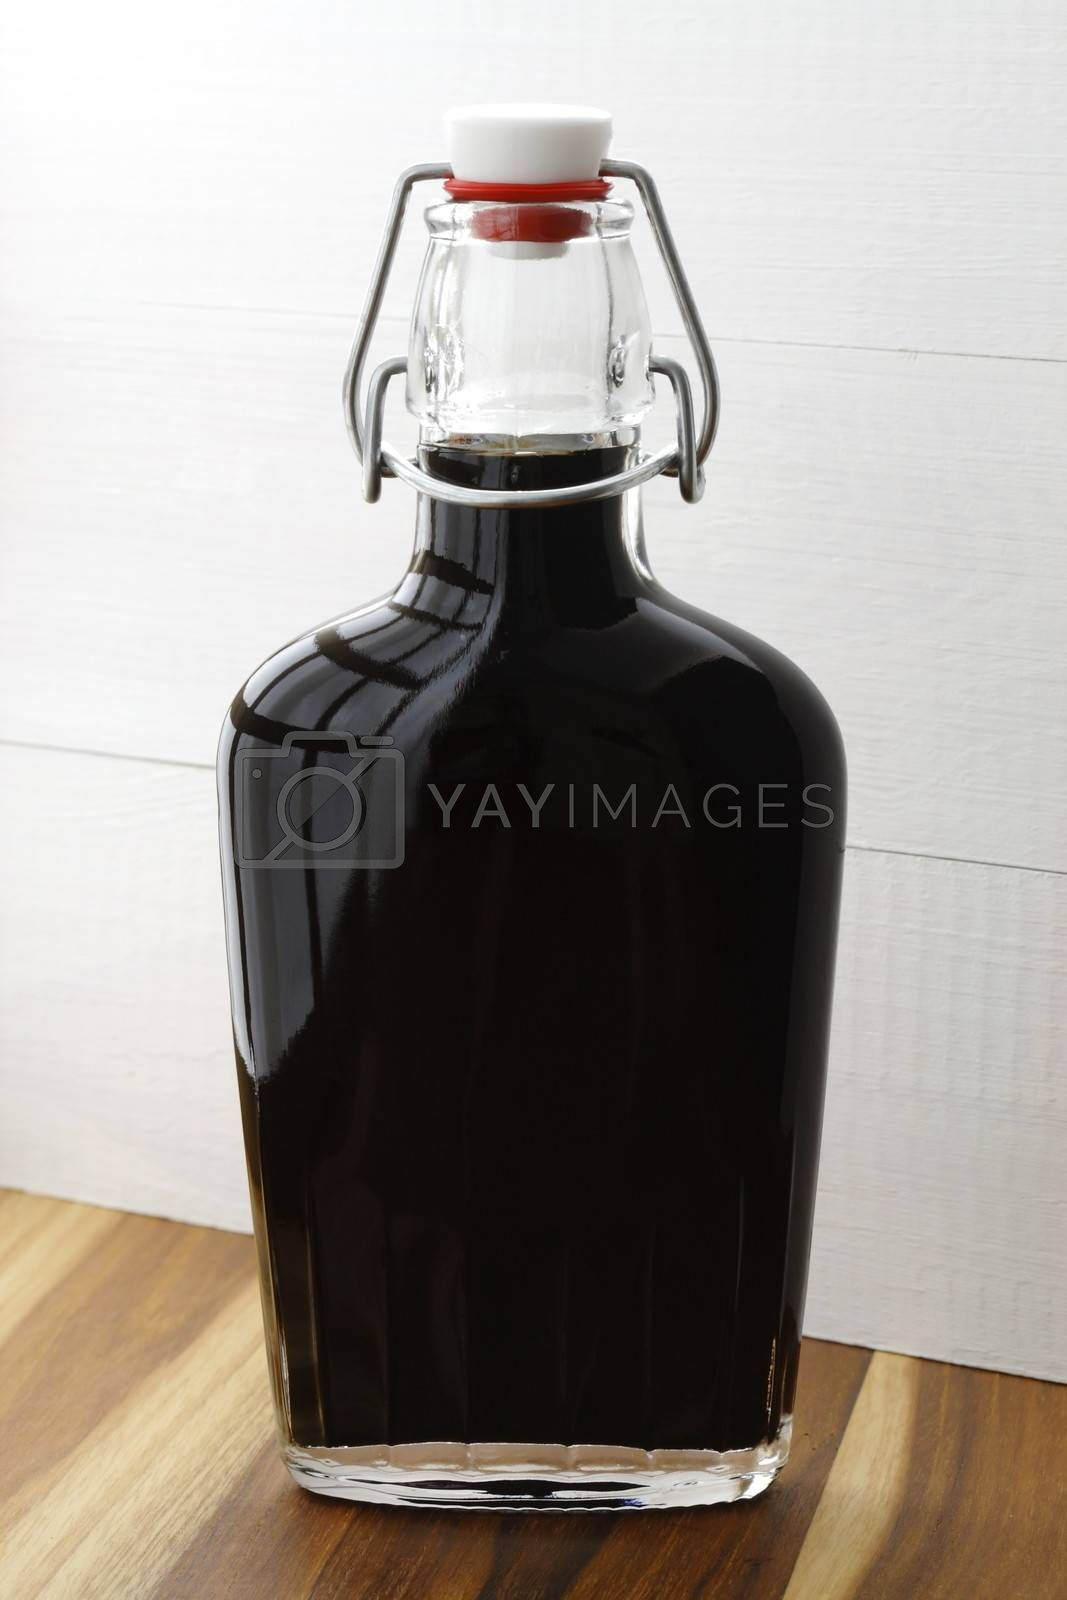 Balsamic vinegar, made from a reduction of cooked Trebbiano grape juice.